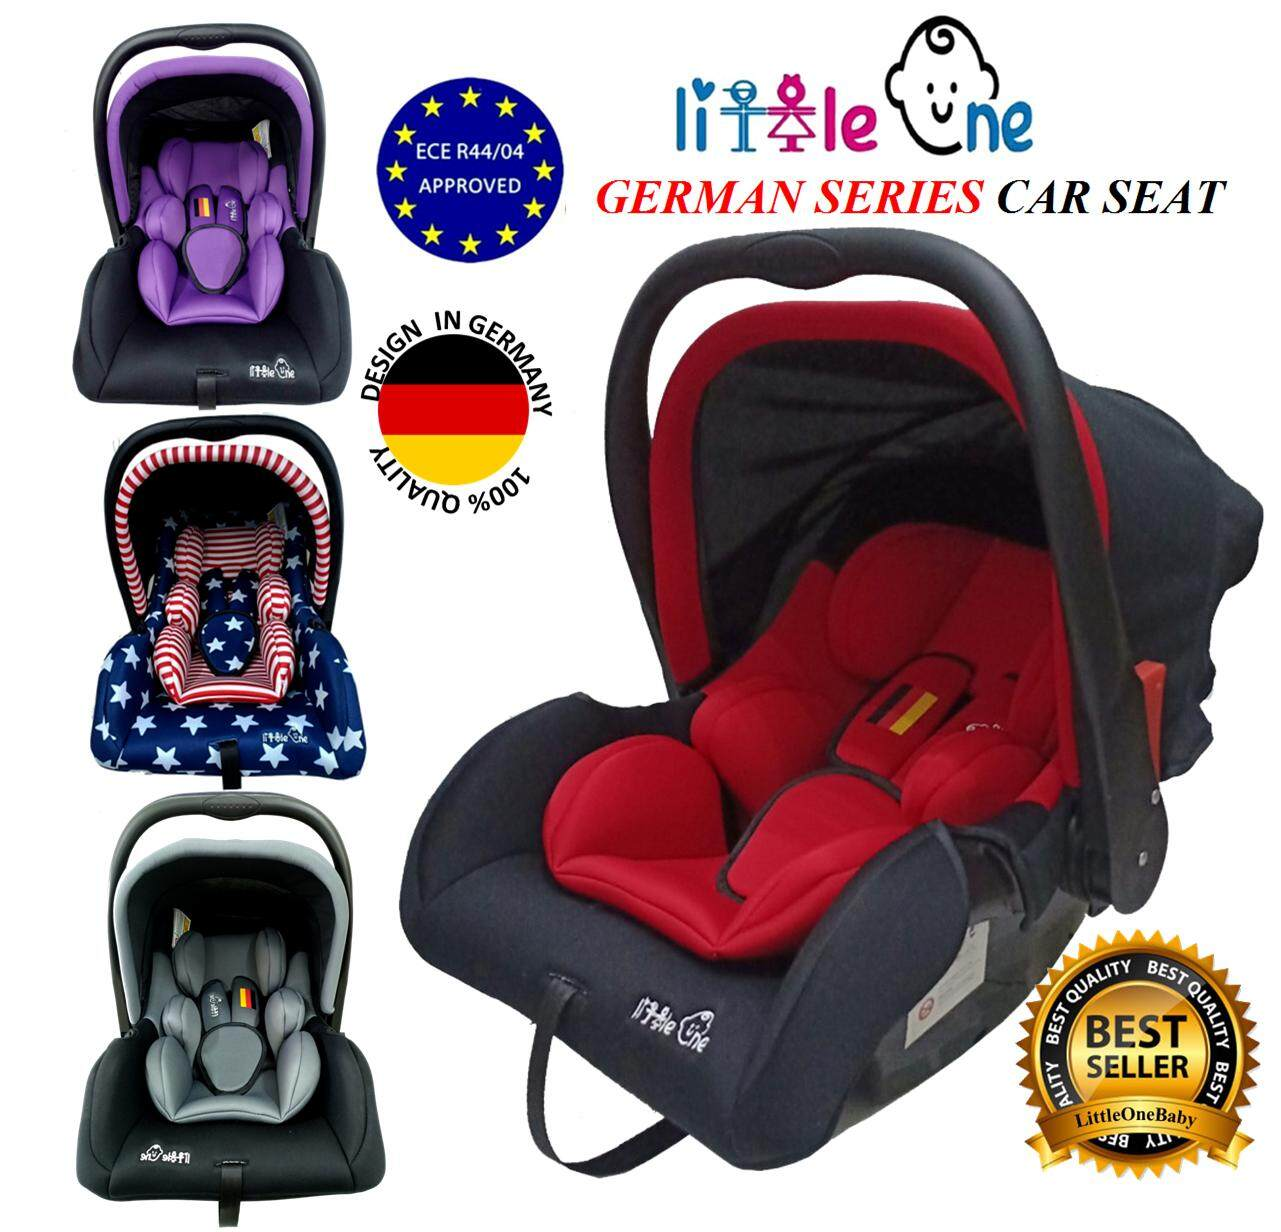 Marvelous Ece Certified Little One Exclusive Csa 4 In 1 Baby Car Seat Baby Carrier Best Seller 2 Year Warranty Alphanode Cool Chair Designs And Ideas Alphanodeonline